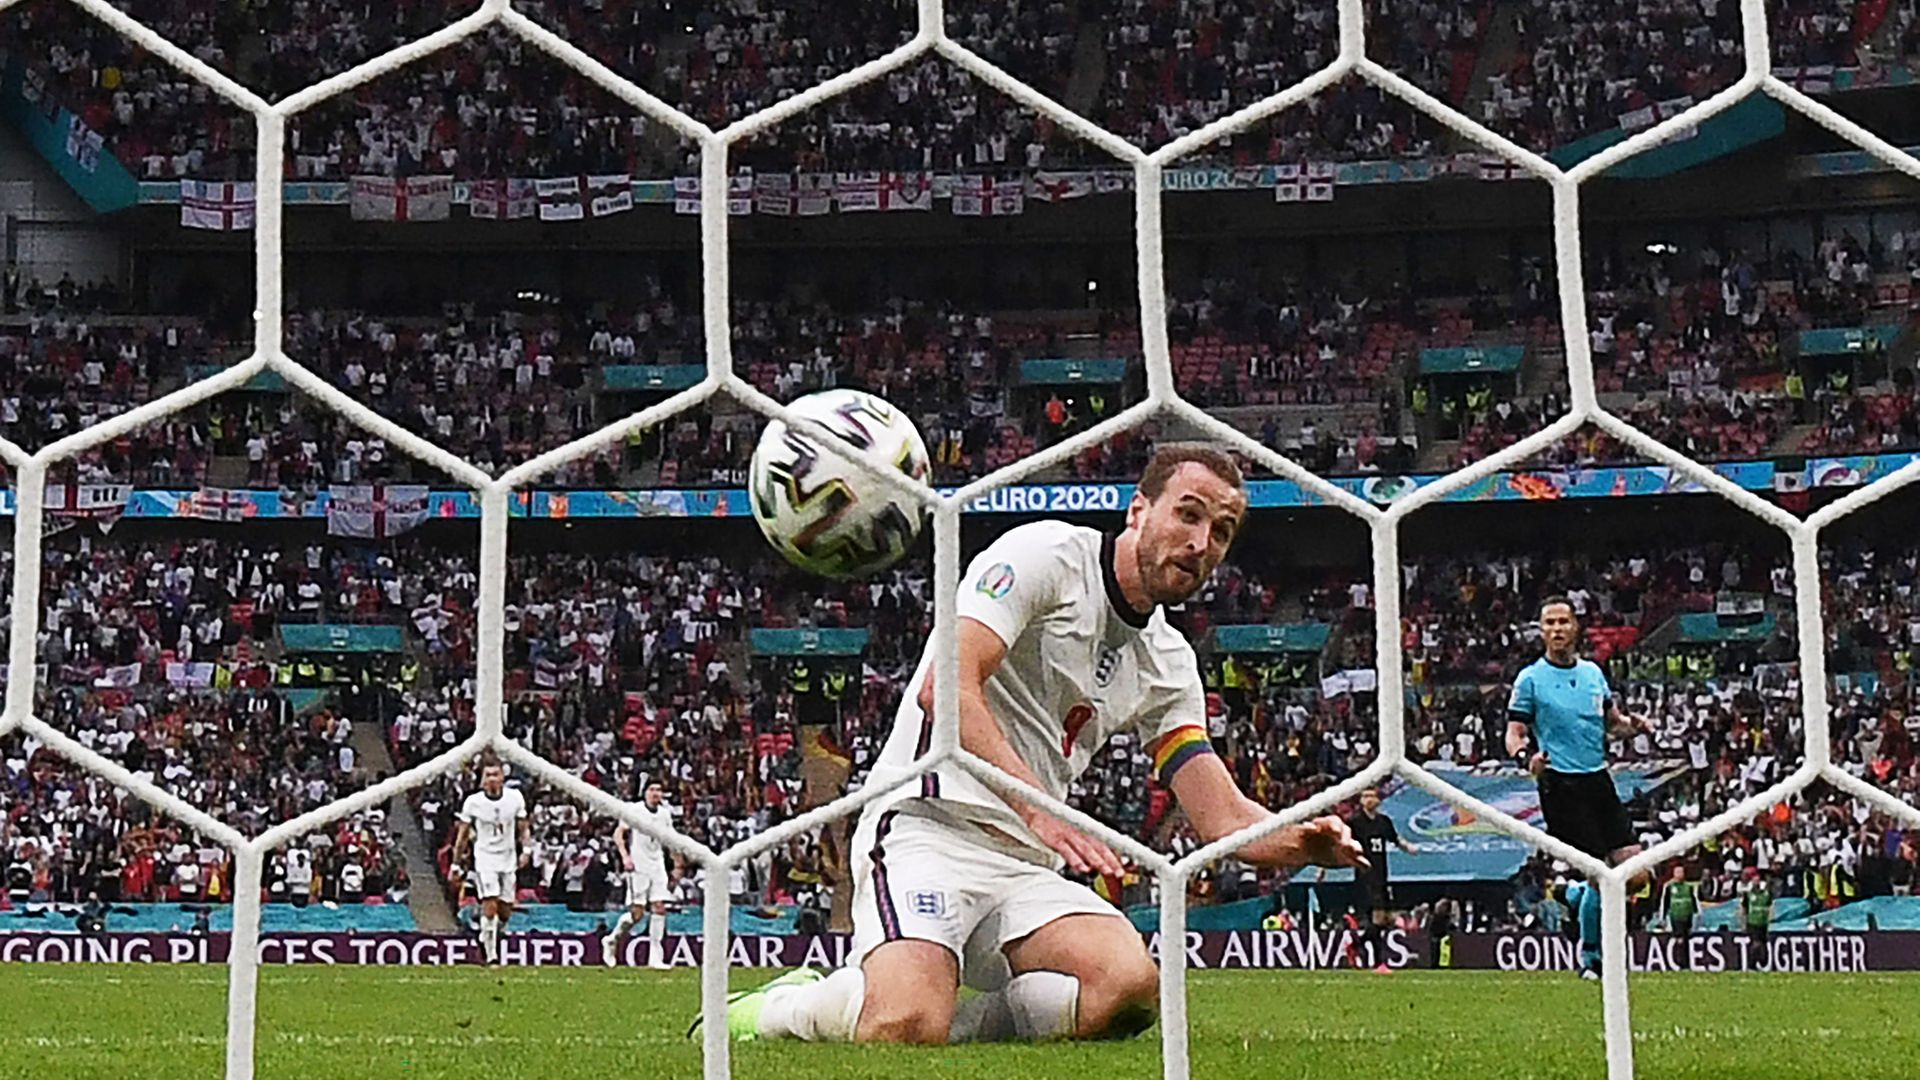 Harry Kane scores England's second goal against Germany at Wembley - Credit: AFP via Getty Images